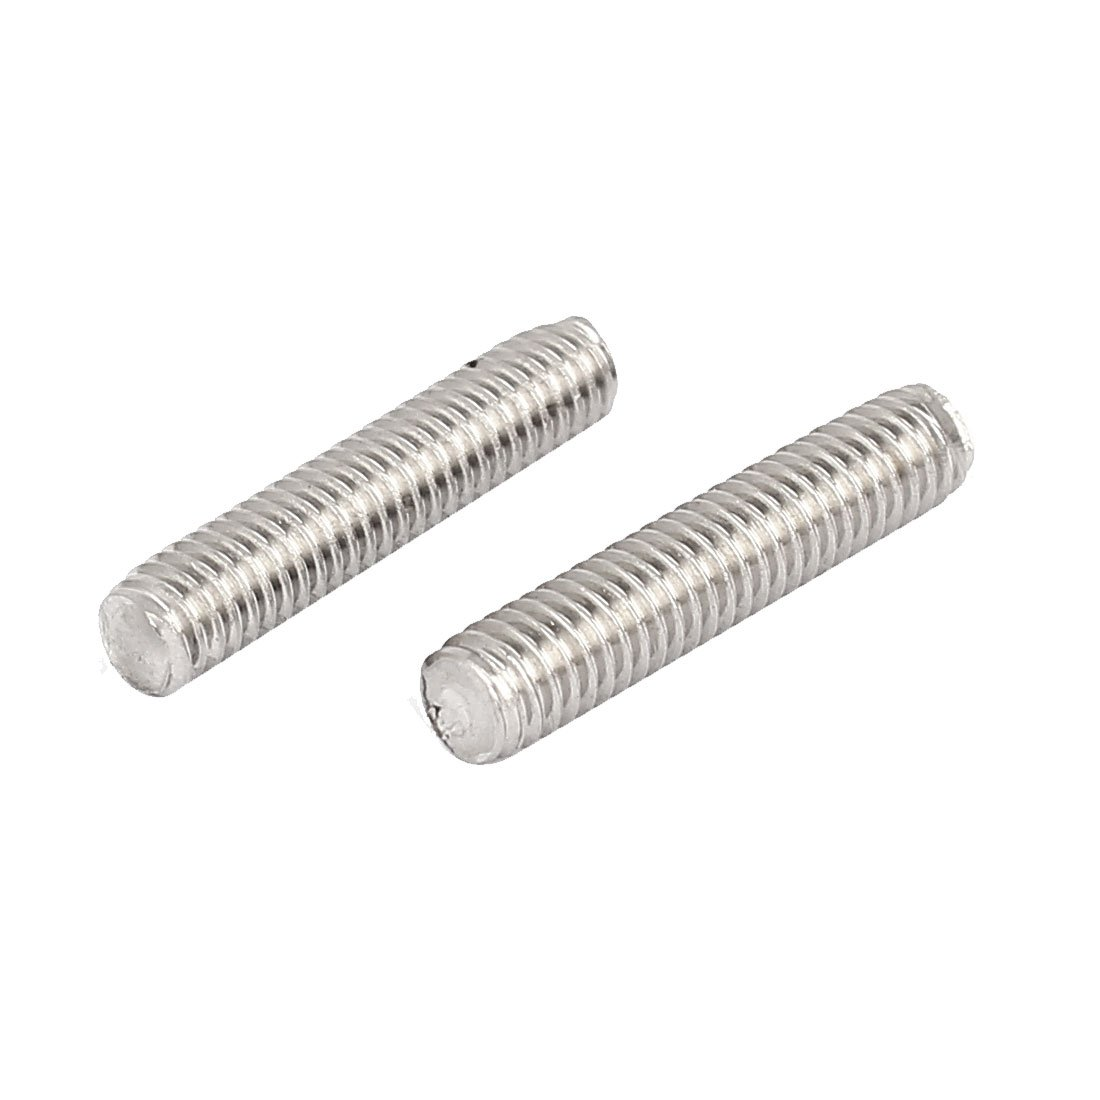 uxcell M4 x 20mm 304 Stainless Steel Fully Threaded Rod Bar Studs Silver Tone 50 Pcs a16071500ux0048